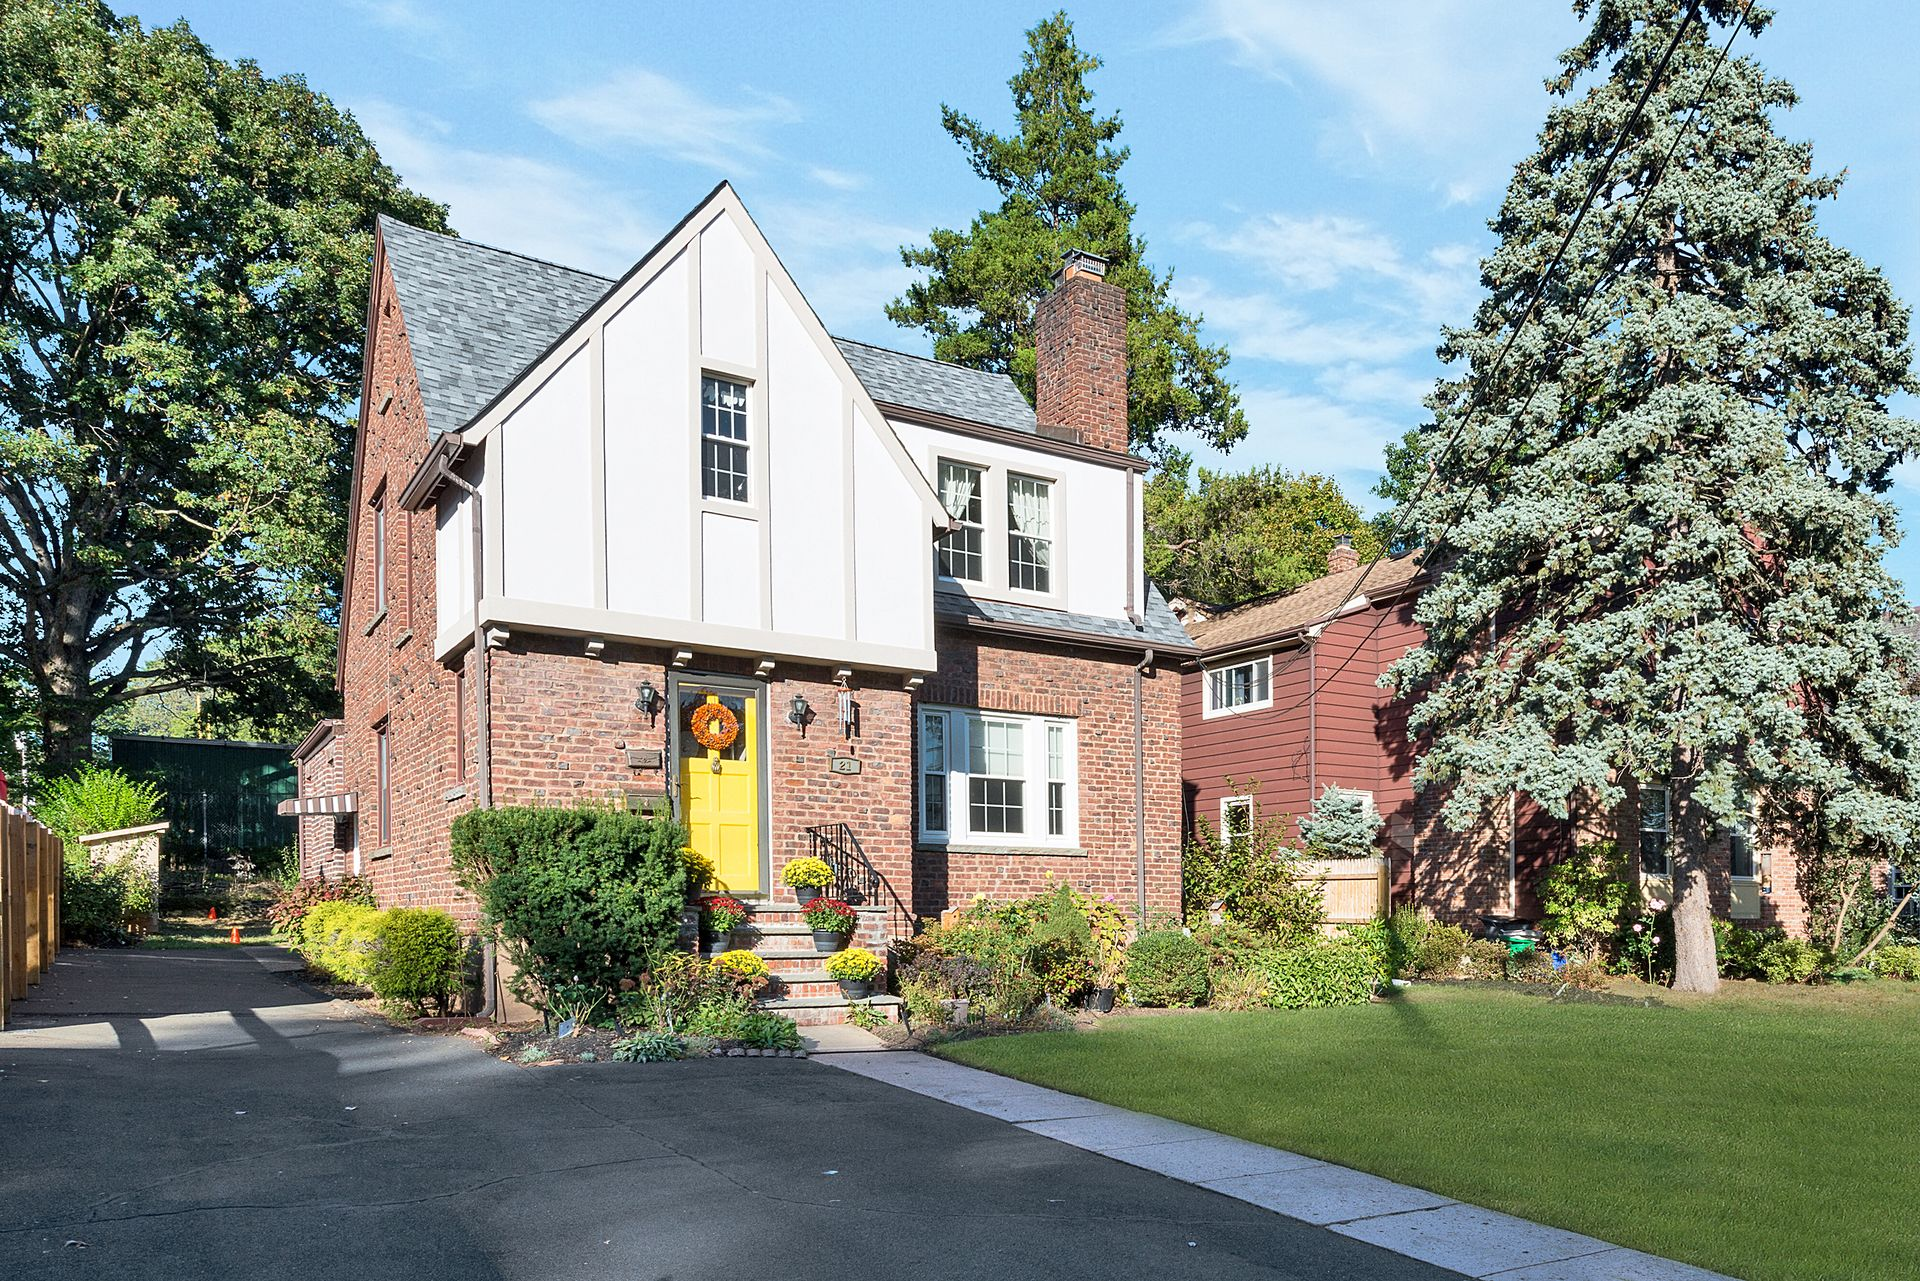 Pretty home sold by Donna Cox who is the best real estate agent in Rockland County and Nyack